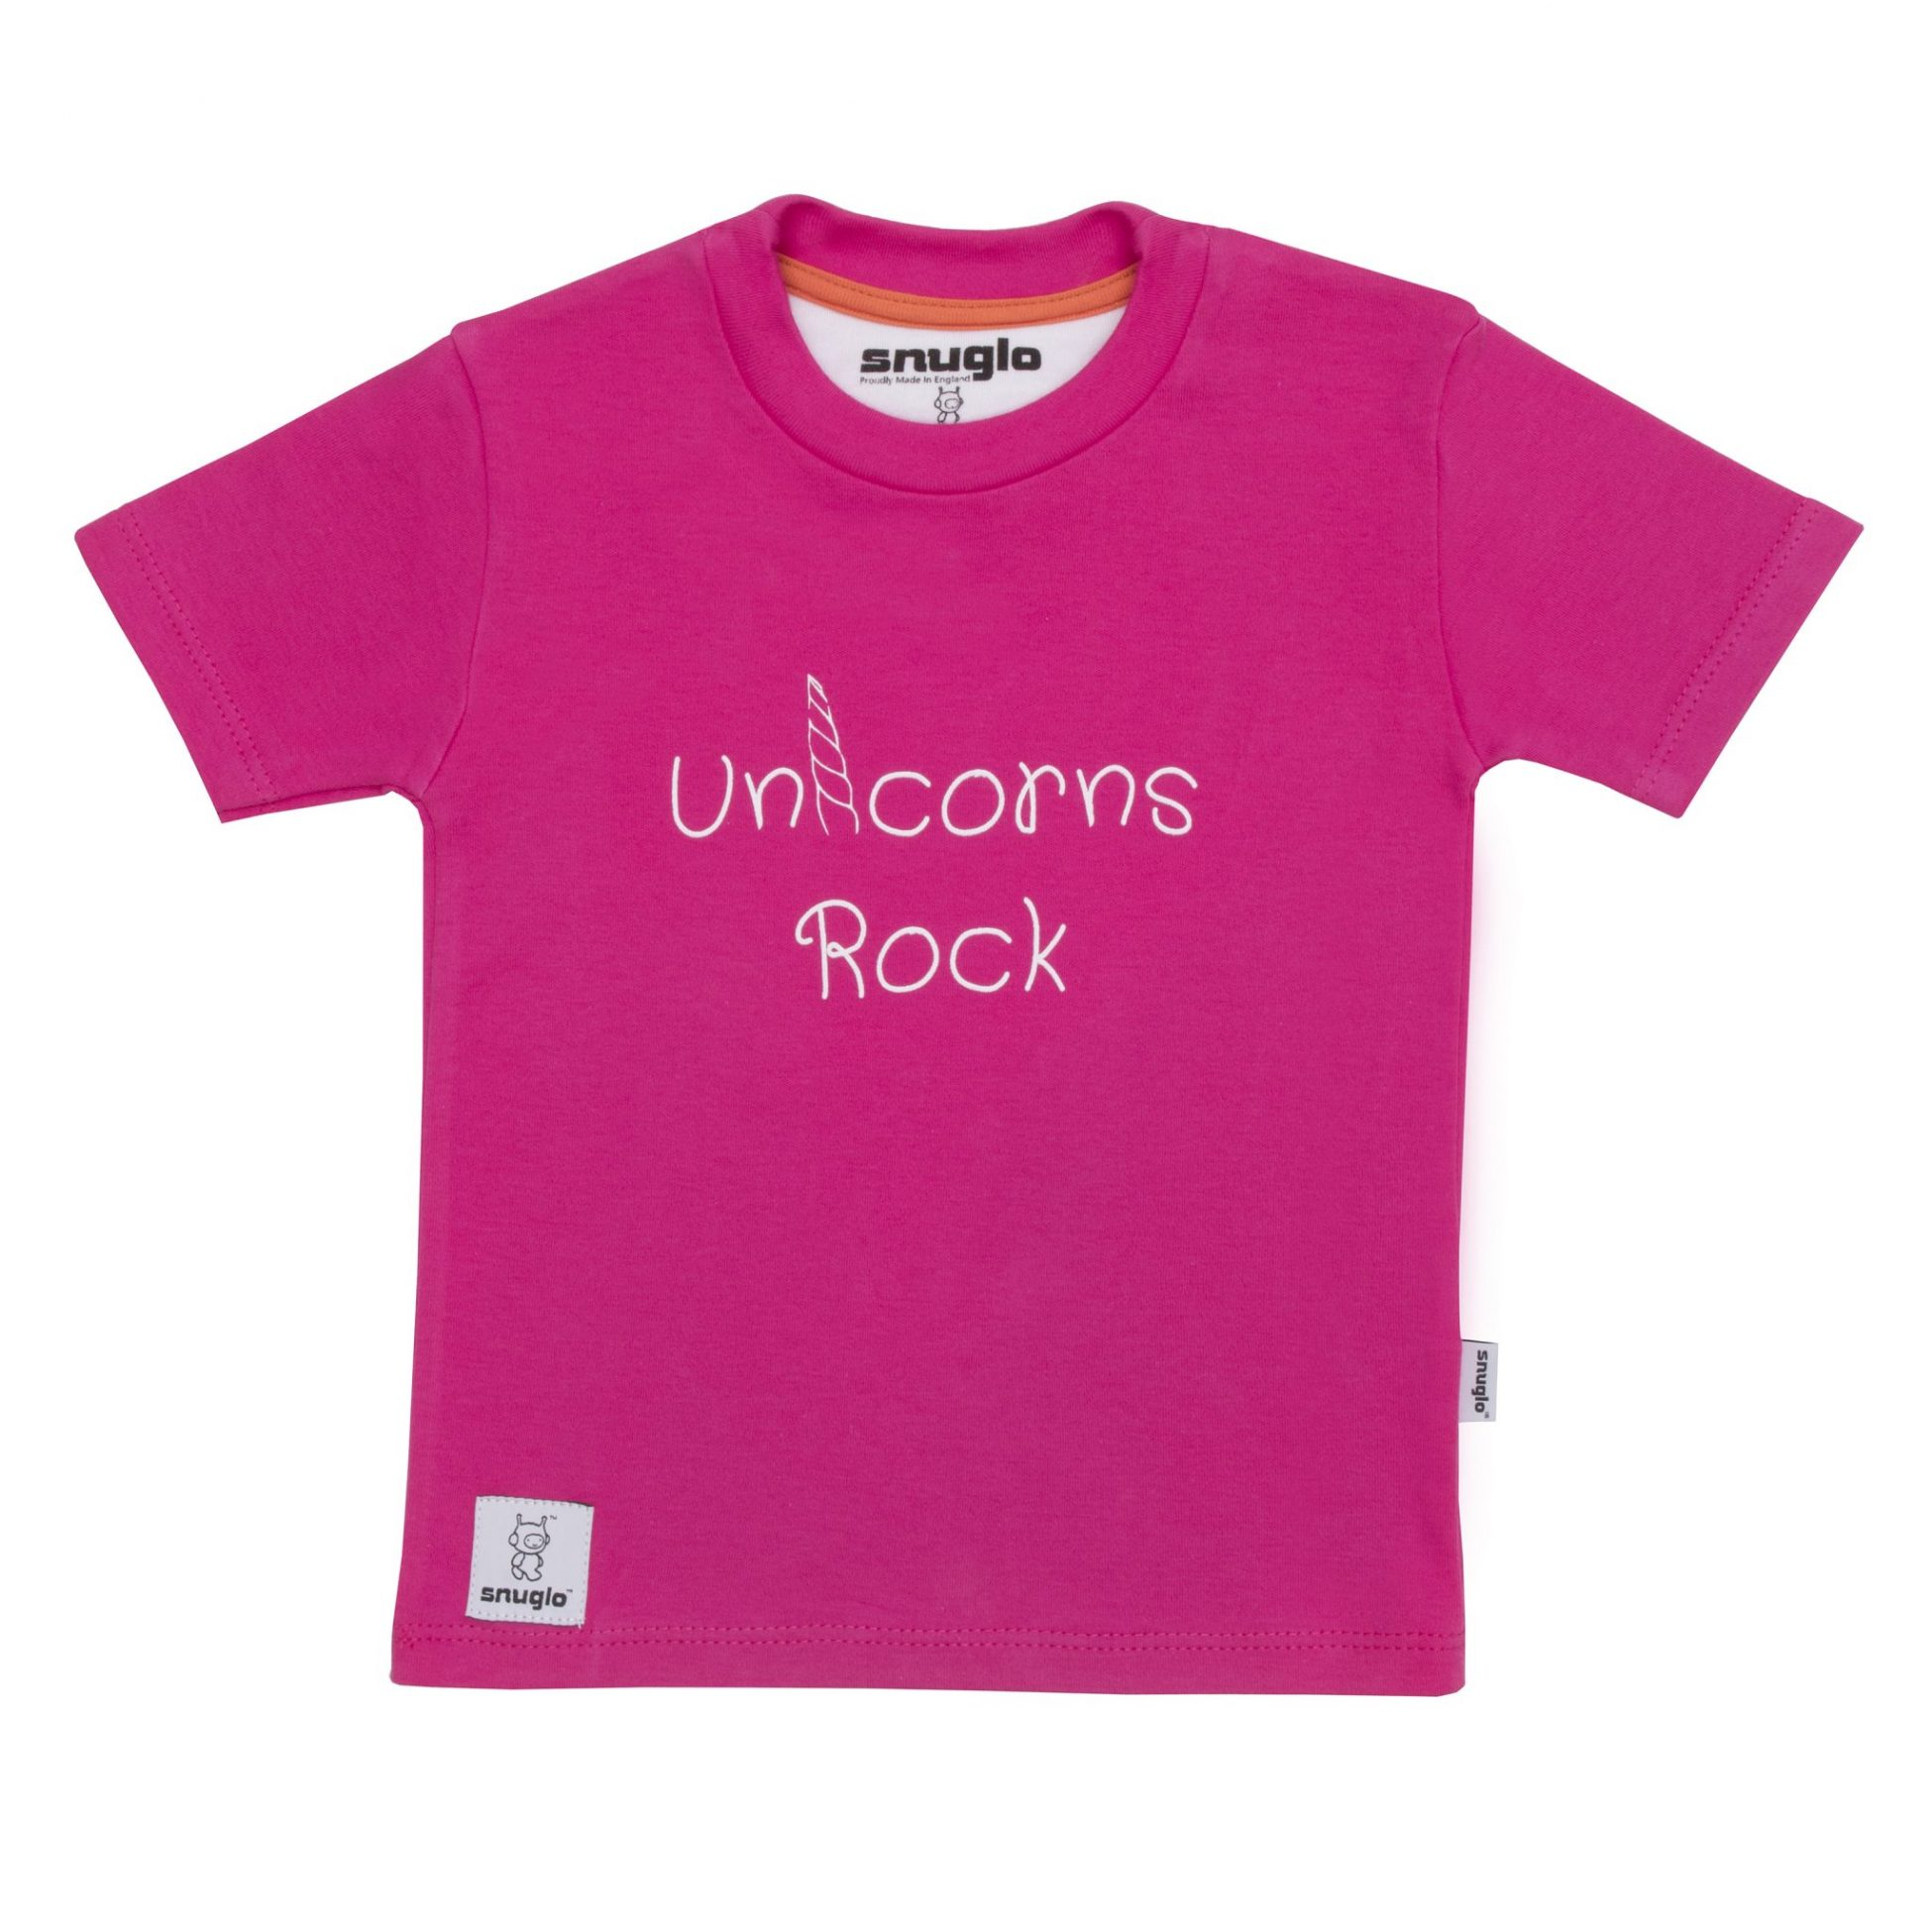 Unicorns Rock pink kids t shirt Made in England by Snuglo™